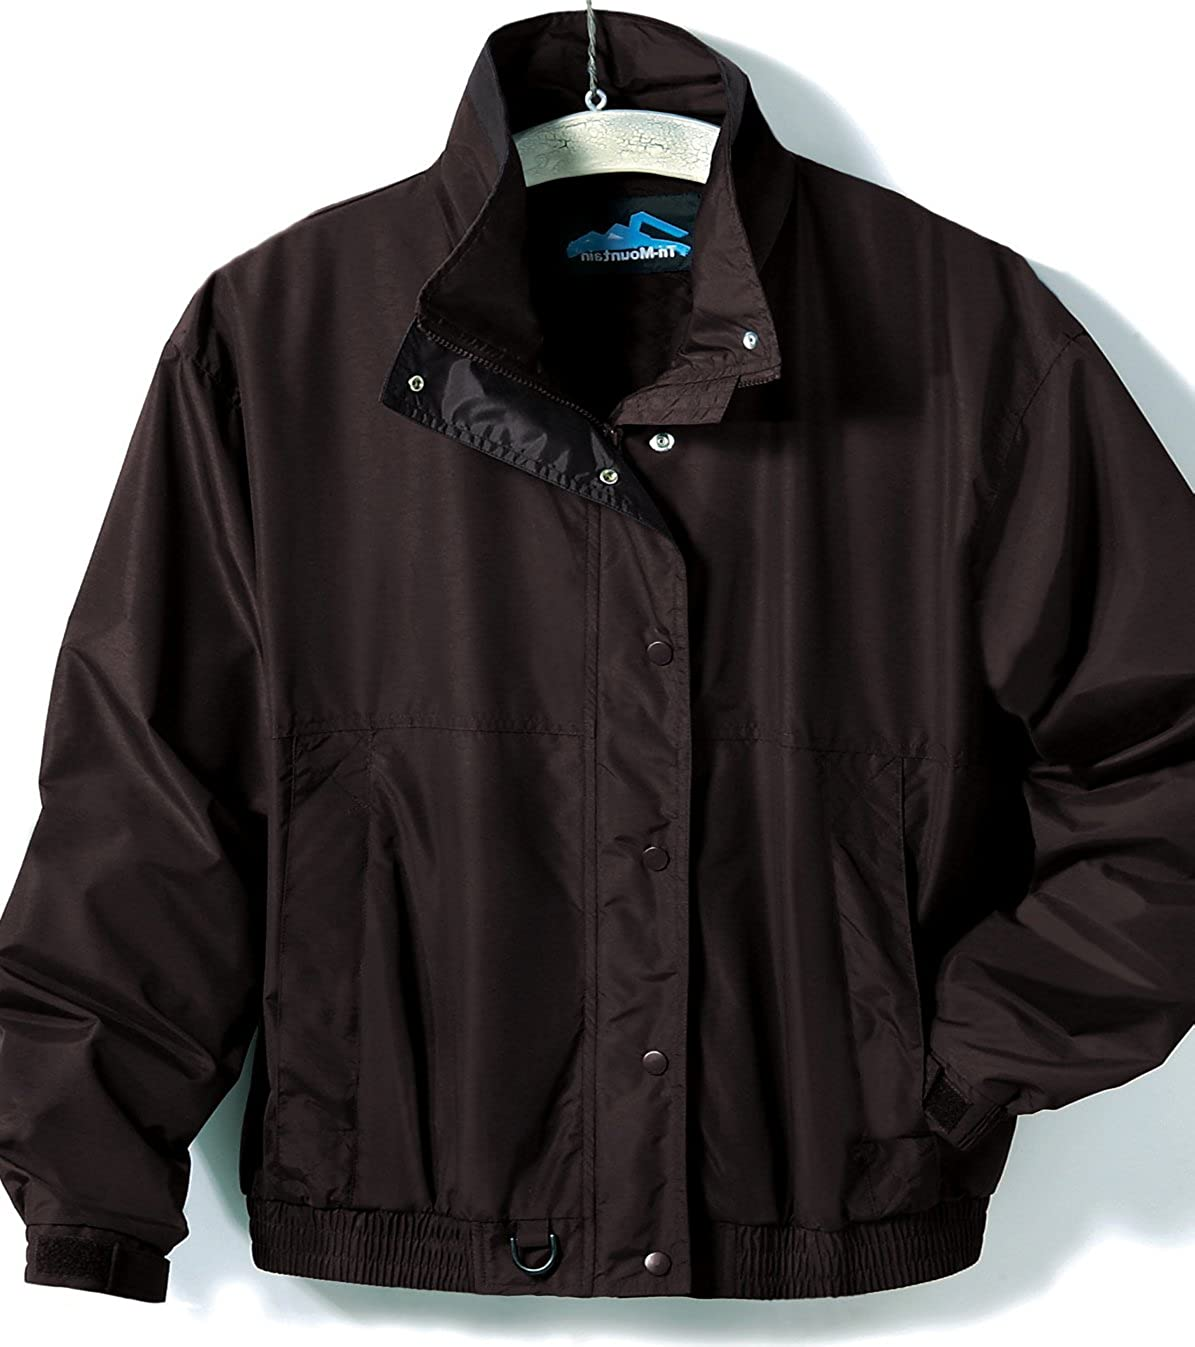 Premium Quality Men's Tall Sizes Heavyweight Nylon Back Country Jacket - Black A&E Designs TM6800T-BLK